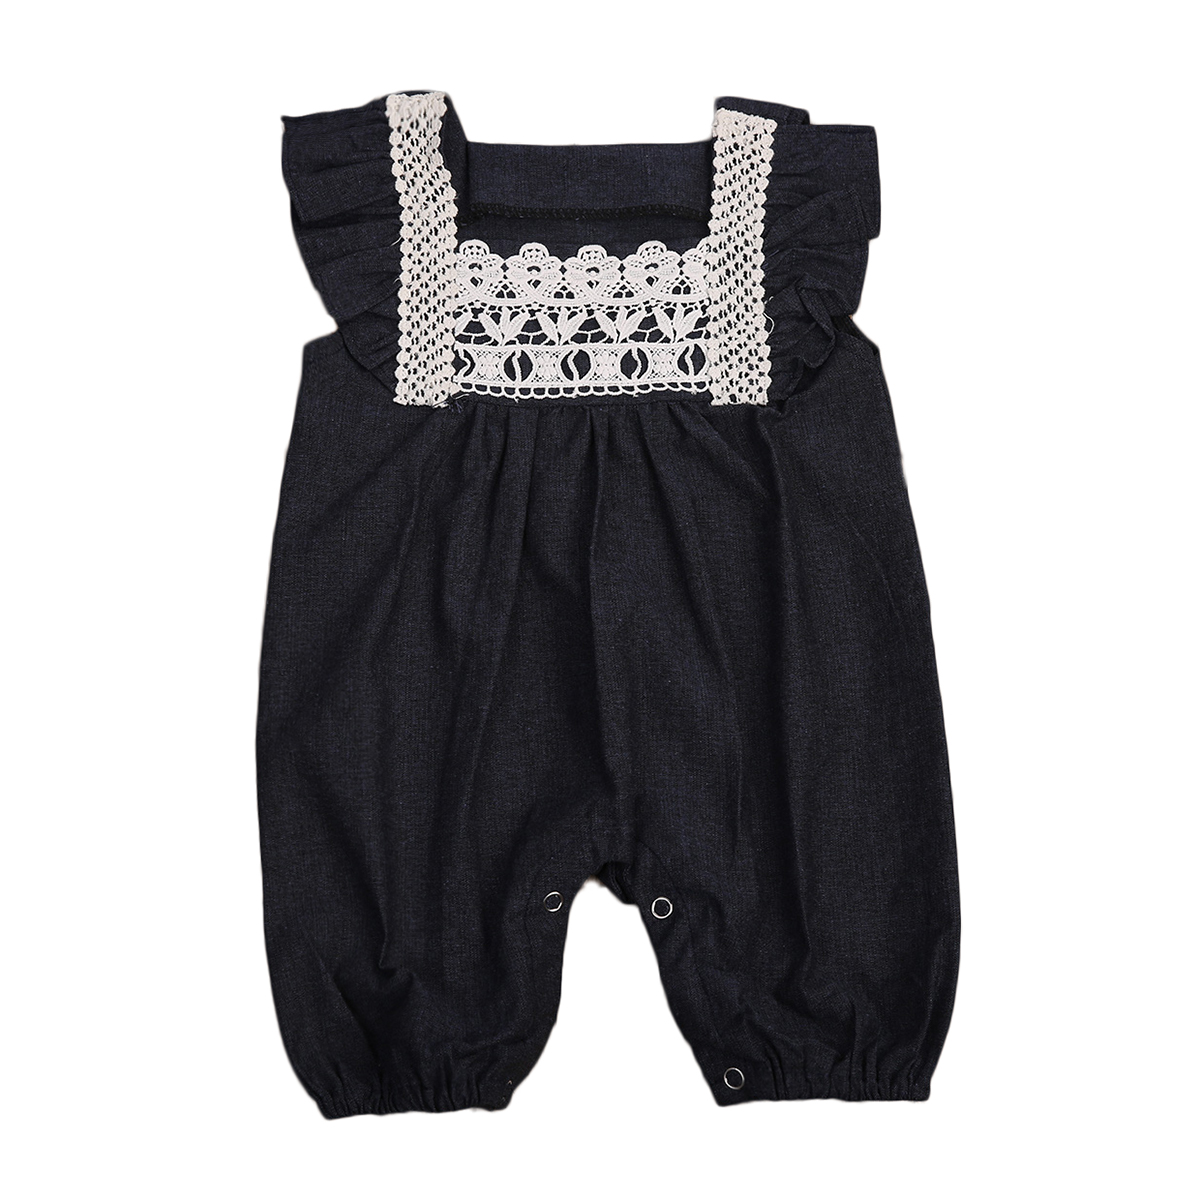 eca44198733 Newborn Infant Baby Girls Clothes Sleeveless Lace Romper Jumpsuit Harem  Pant Baby Kids Clothes Outfits